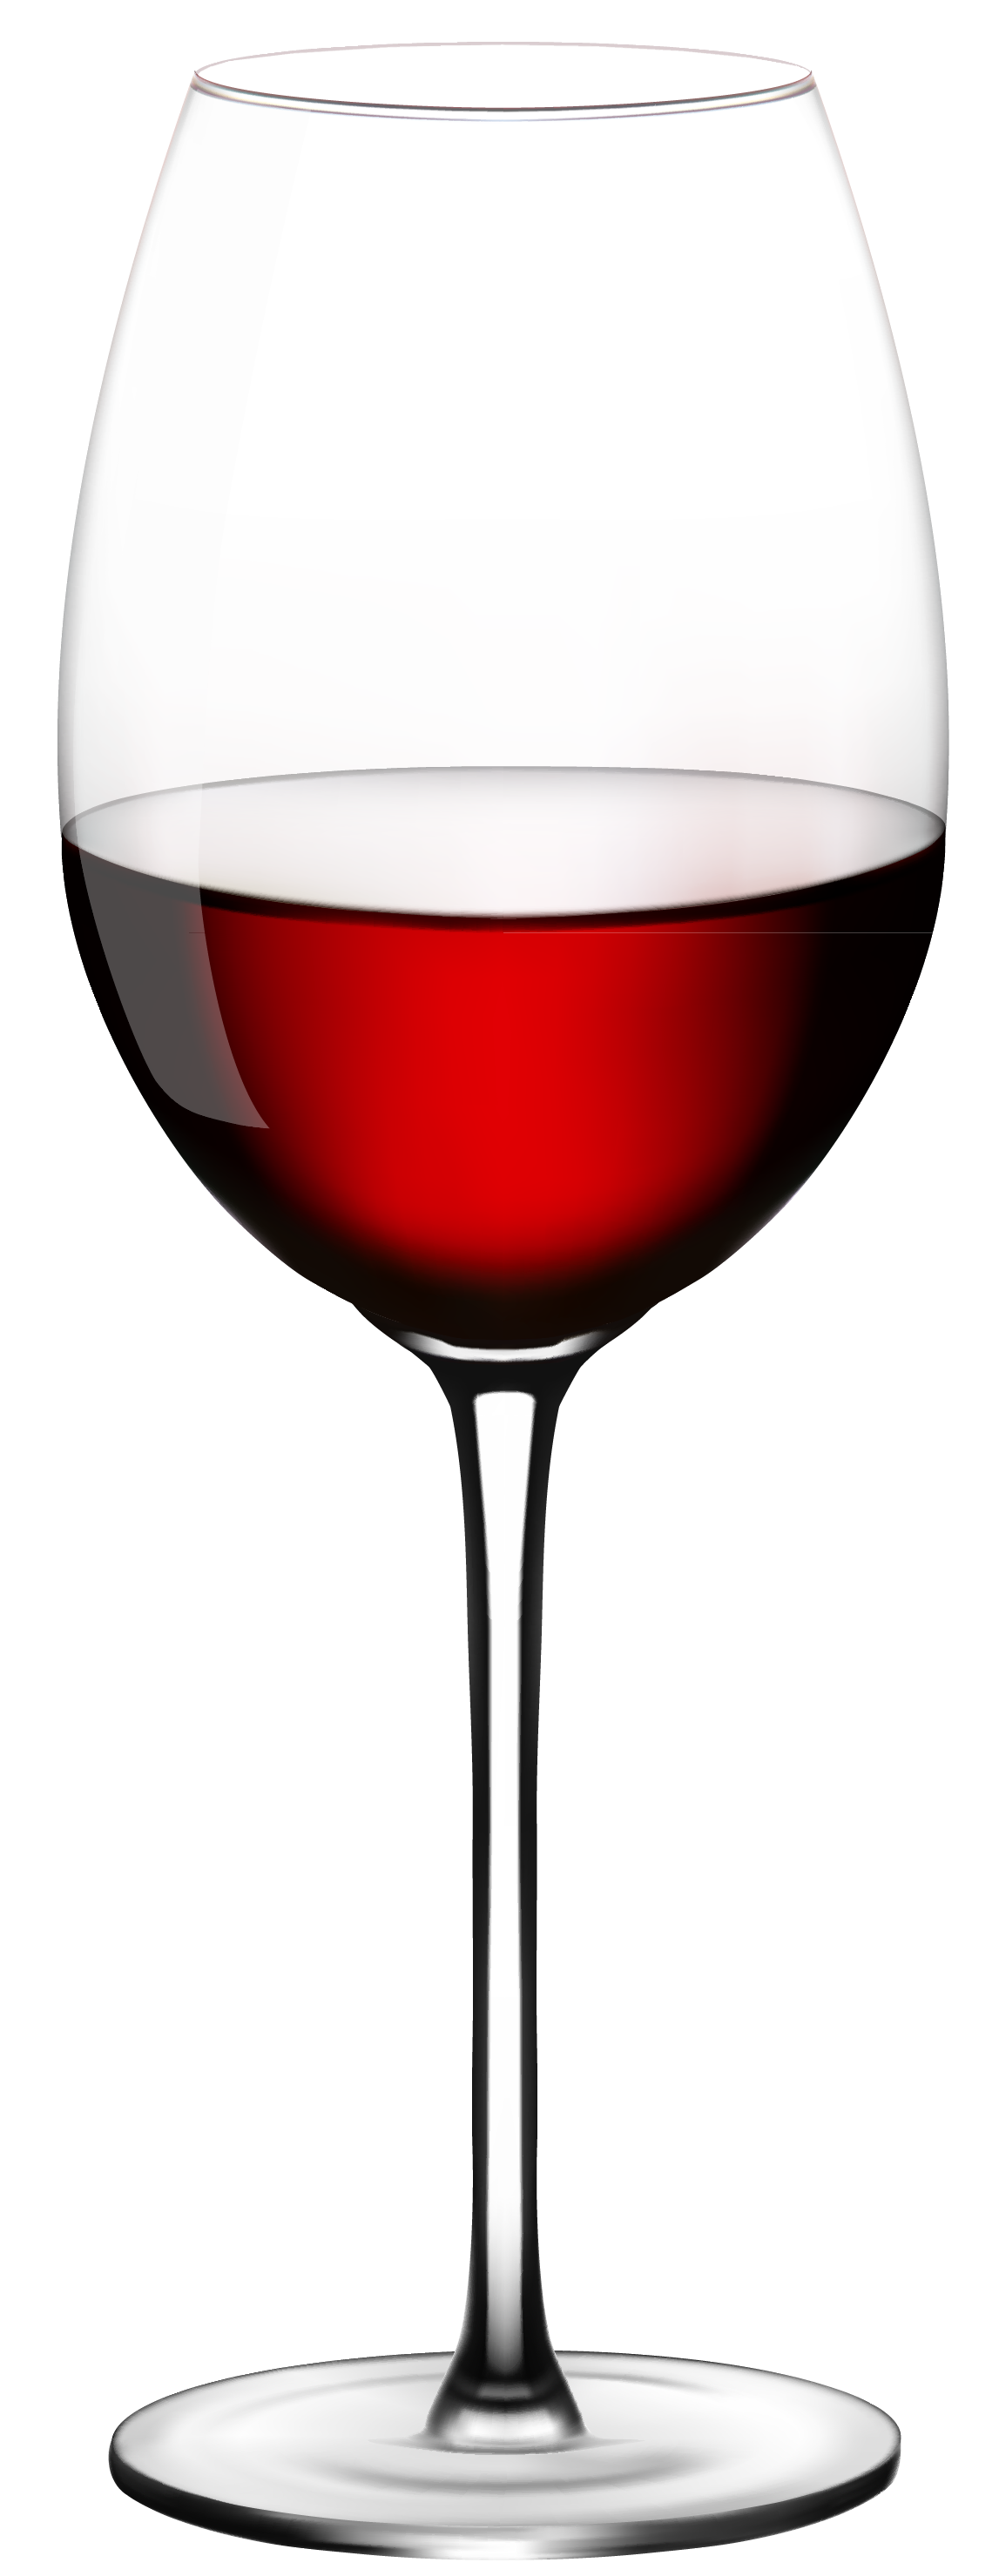 Wine Glass Png Image Image #31791 - Glass Of Wine, Transparent background PNG HD thumbnail